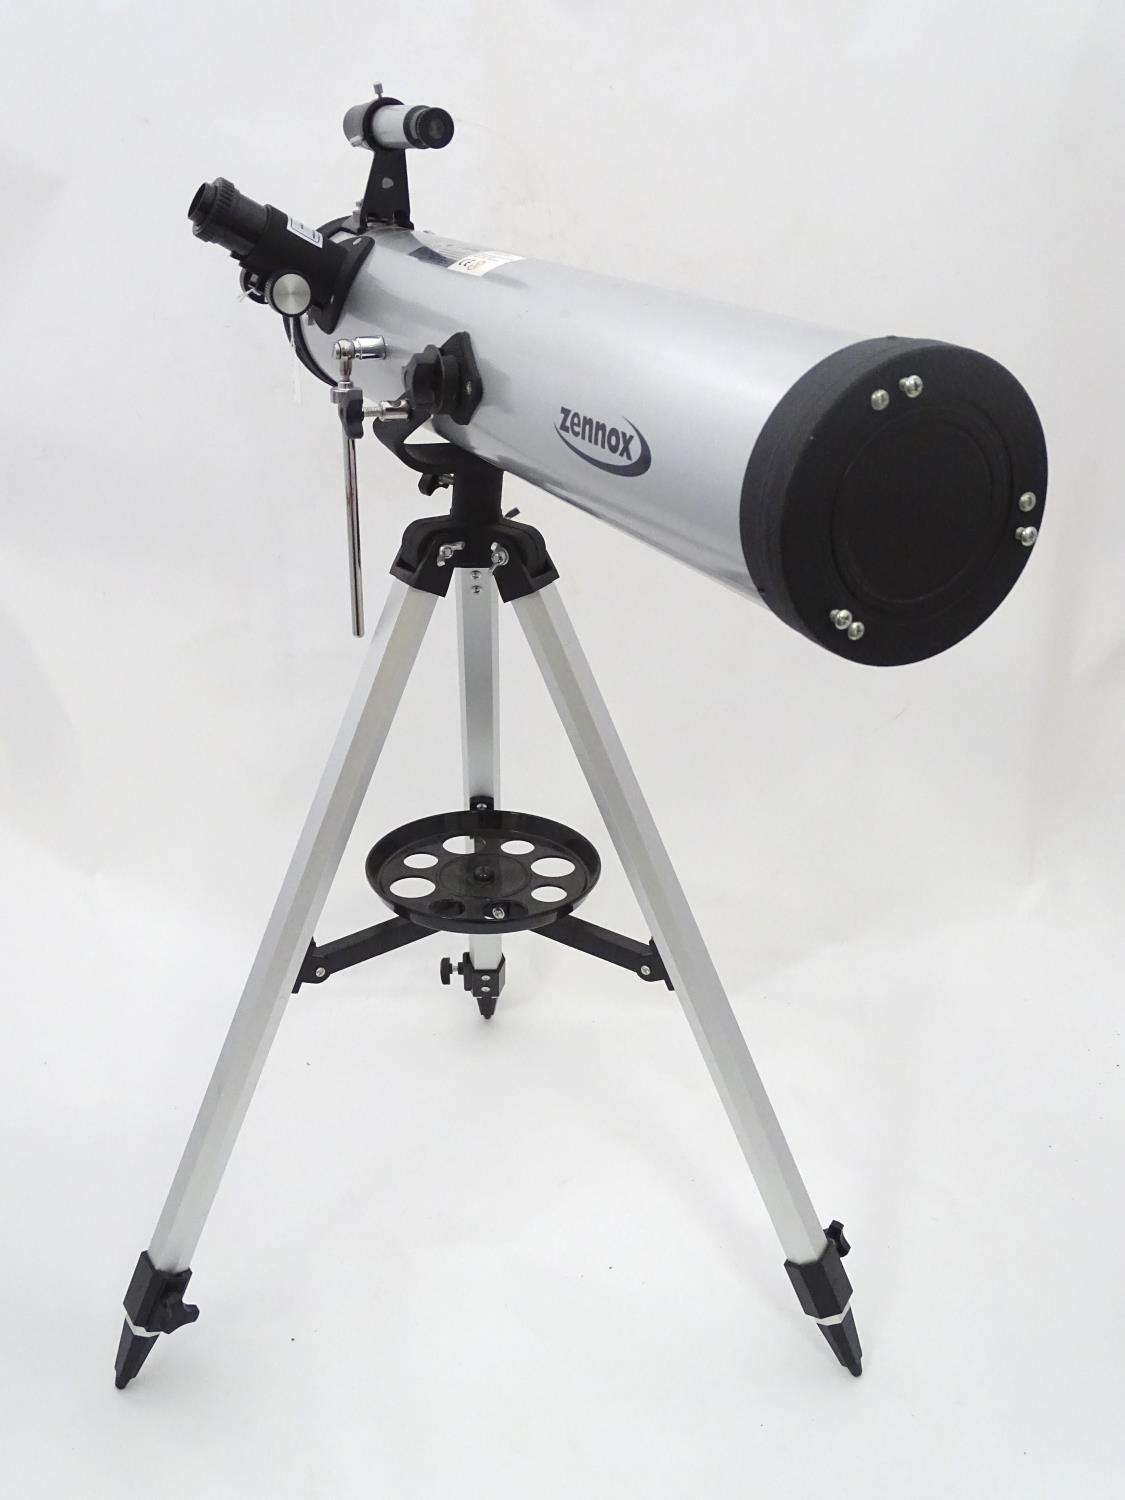 Lot 20 - A telescope by Zennox 76 x 700 CONDITION: Please Note - we do not make reference to